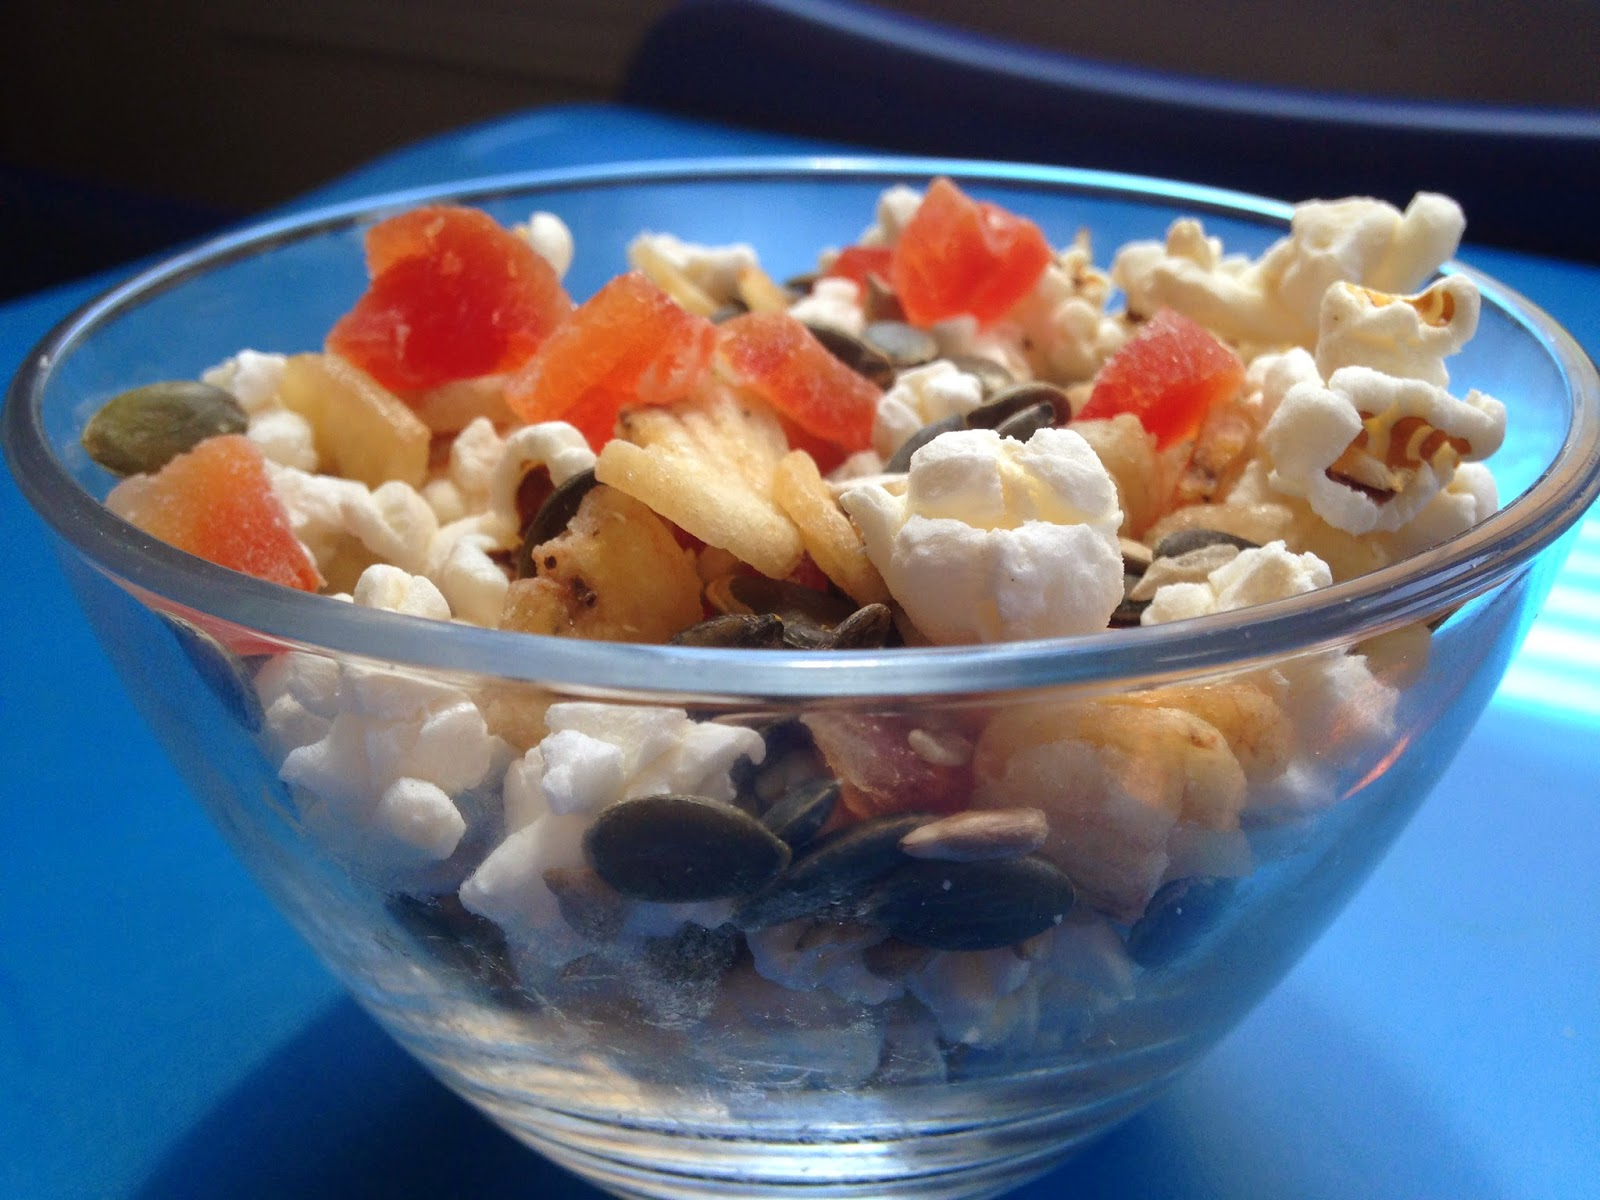 nut free snack mix